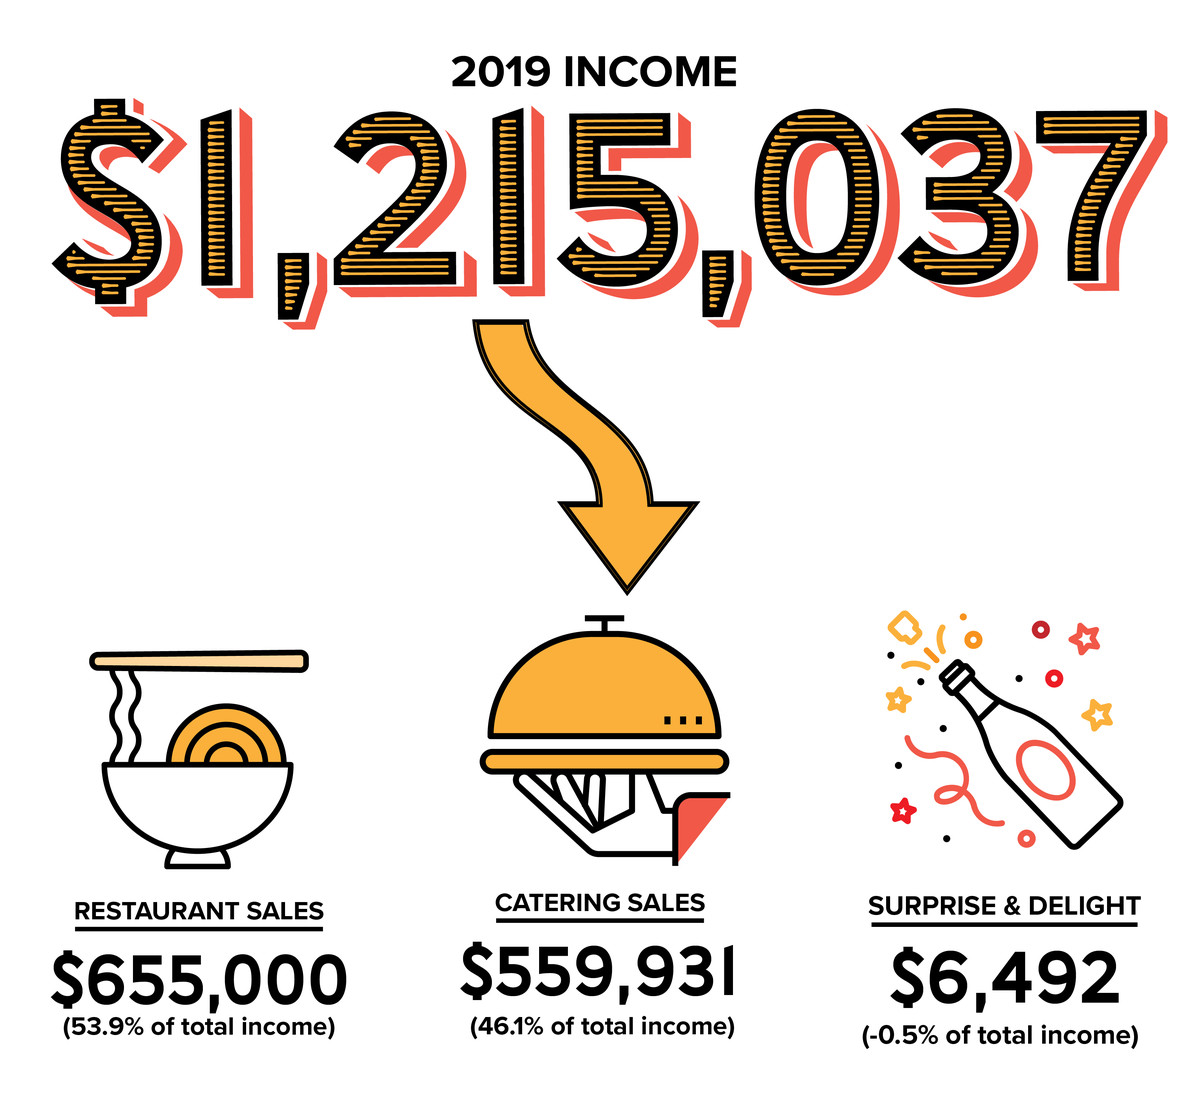 """Total income in 2019 was $1,215,037. Broken down, the specific sales were: $655,000 in restaurant sales (53.9% of total income) and $559,931 in catering sales (46.1% of total income), minus $6,492 for """"surprise and delight."""""""